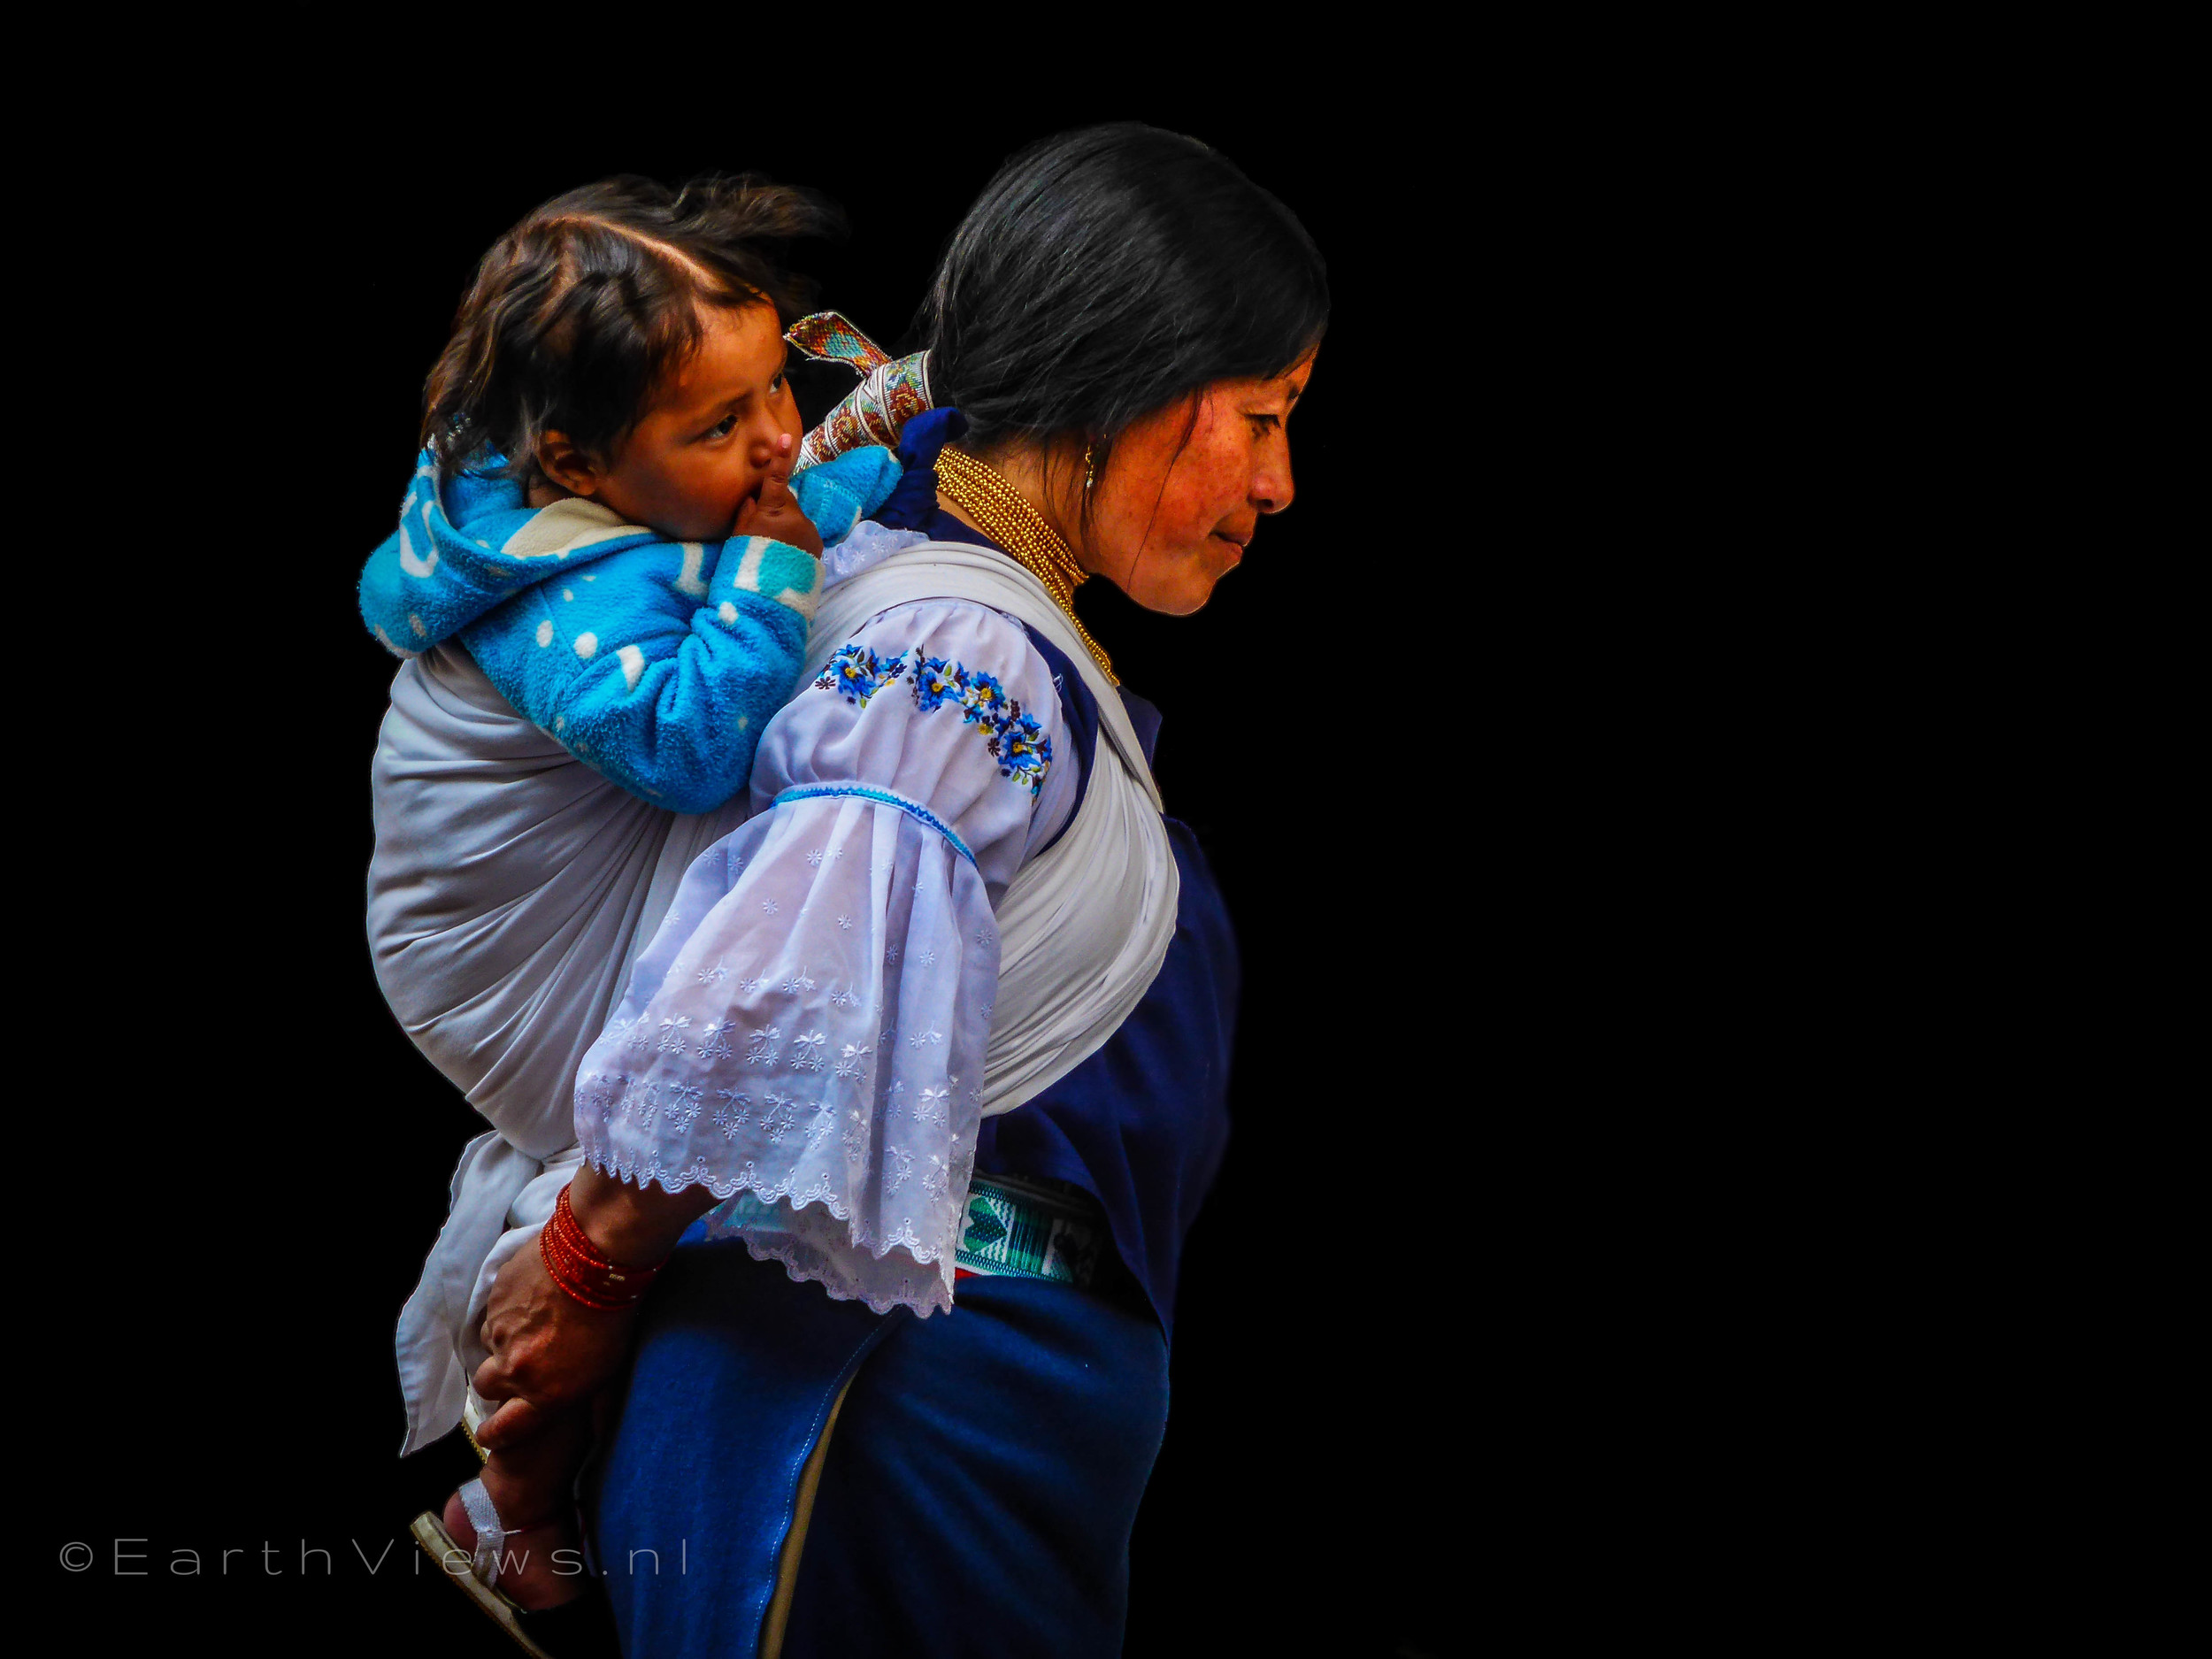 An Otavaleña in traditional style with her child on the Otavalo market.